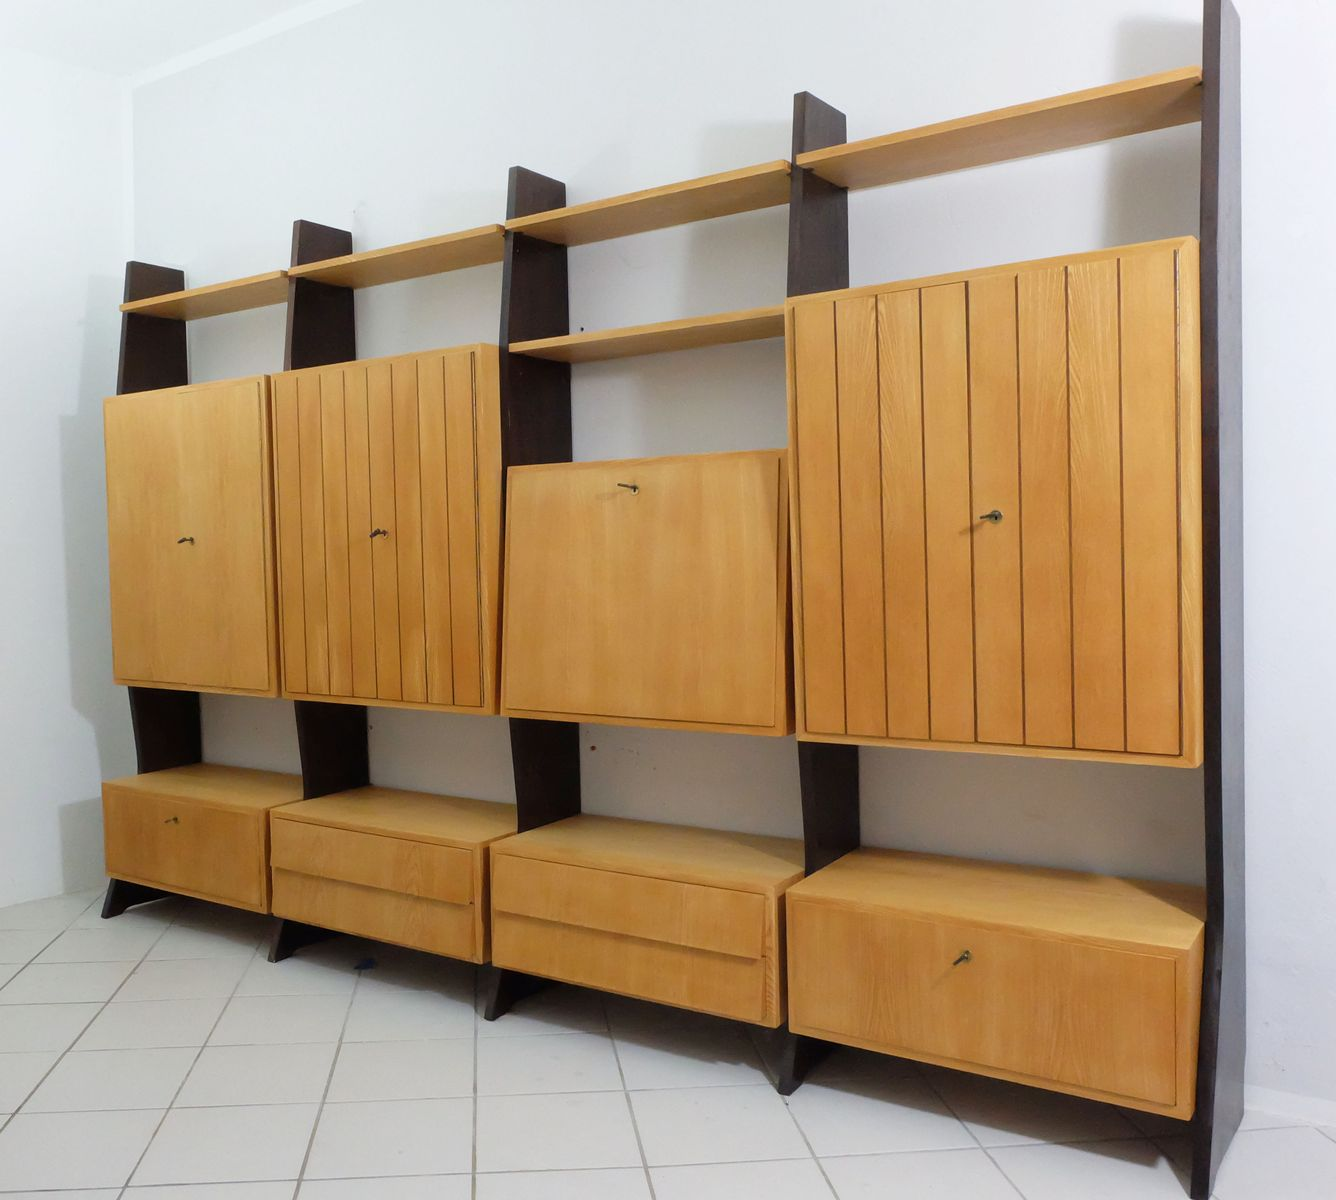 regalwand von erich stratmann f r oldenburger m belwerkst tten 1950er bei pamono kaufen. Black Bedroom Furniture Sets. Home Design Ideas